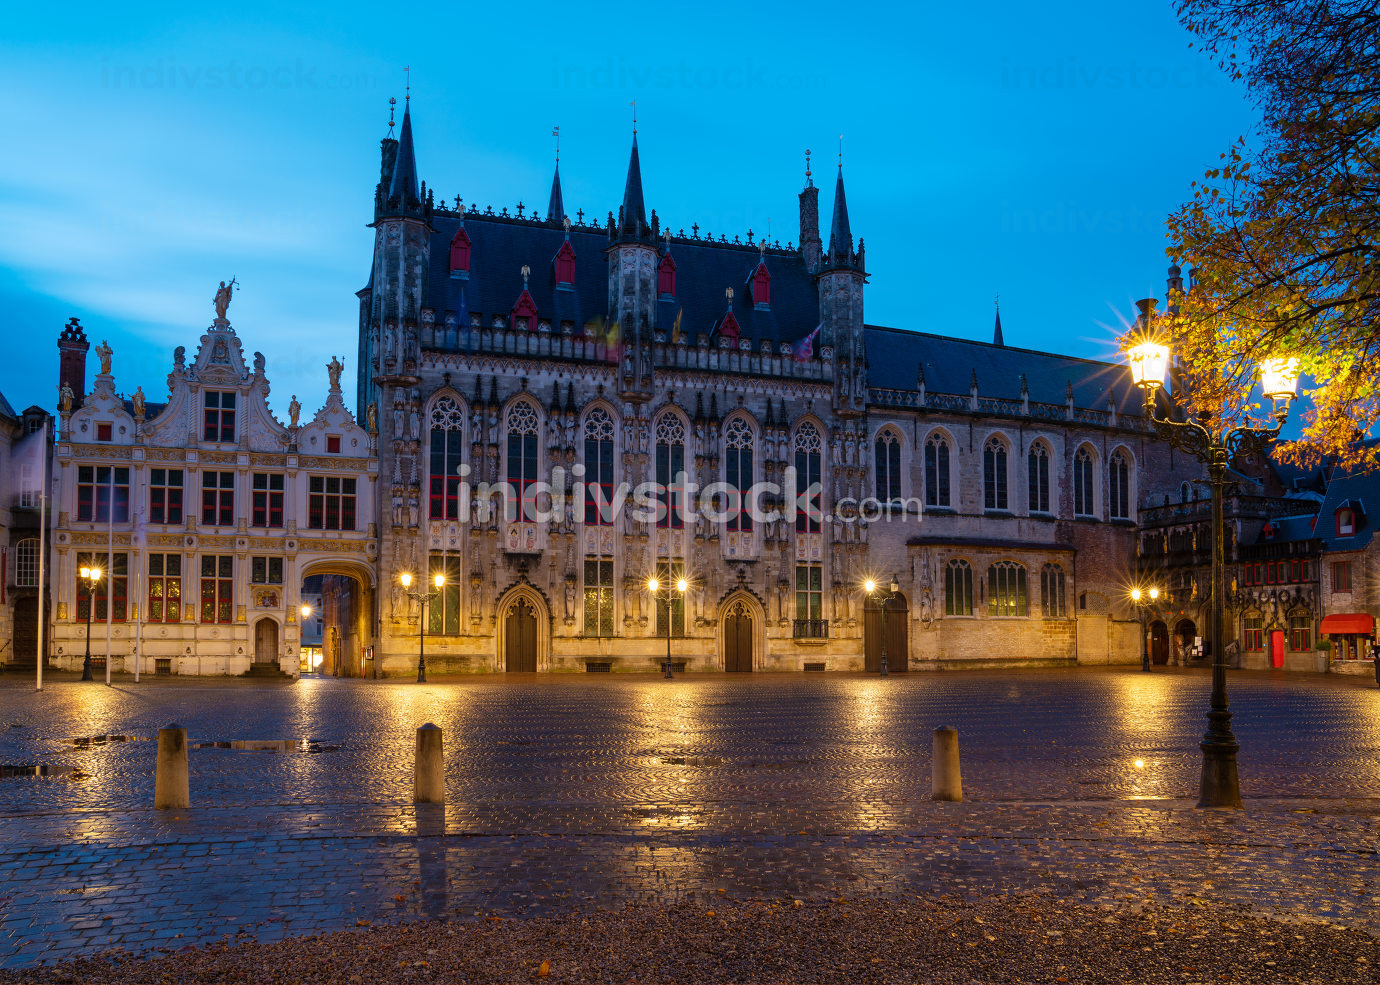 Panoramic image of the historic townhall at daybreak, historic buildings of Bruges on November 2, 2019 in Belgium